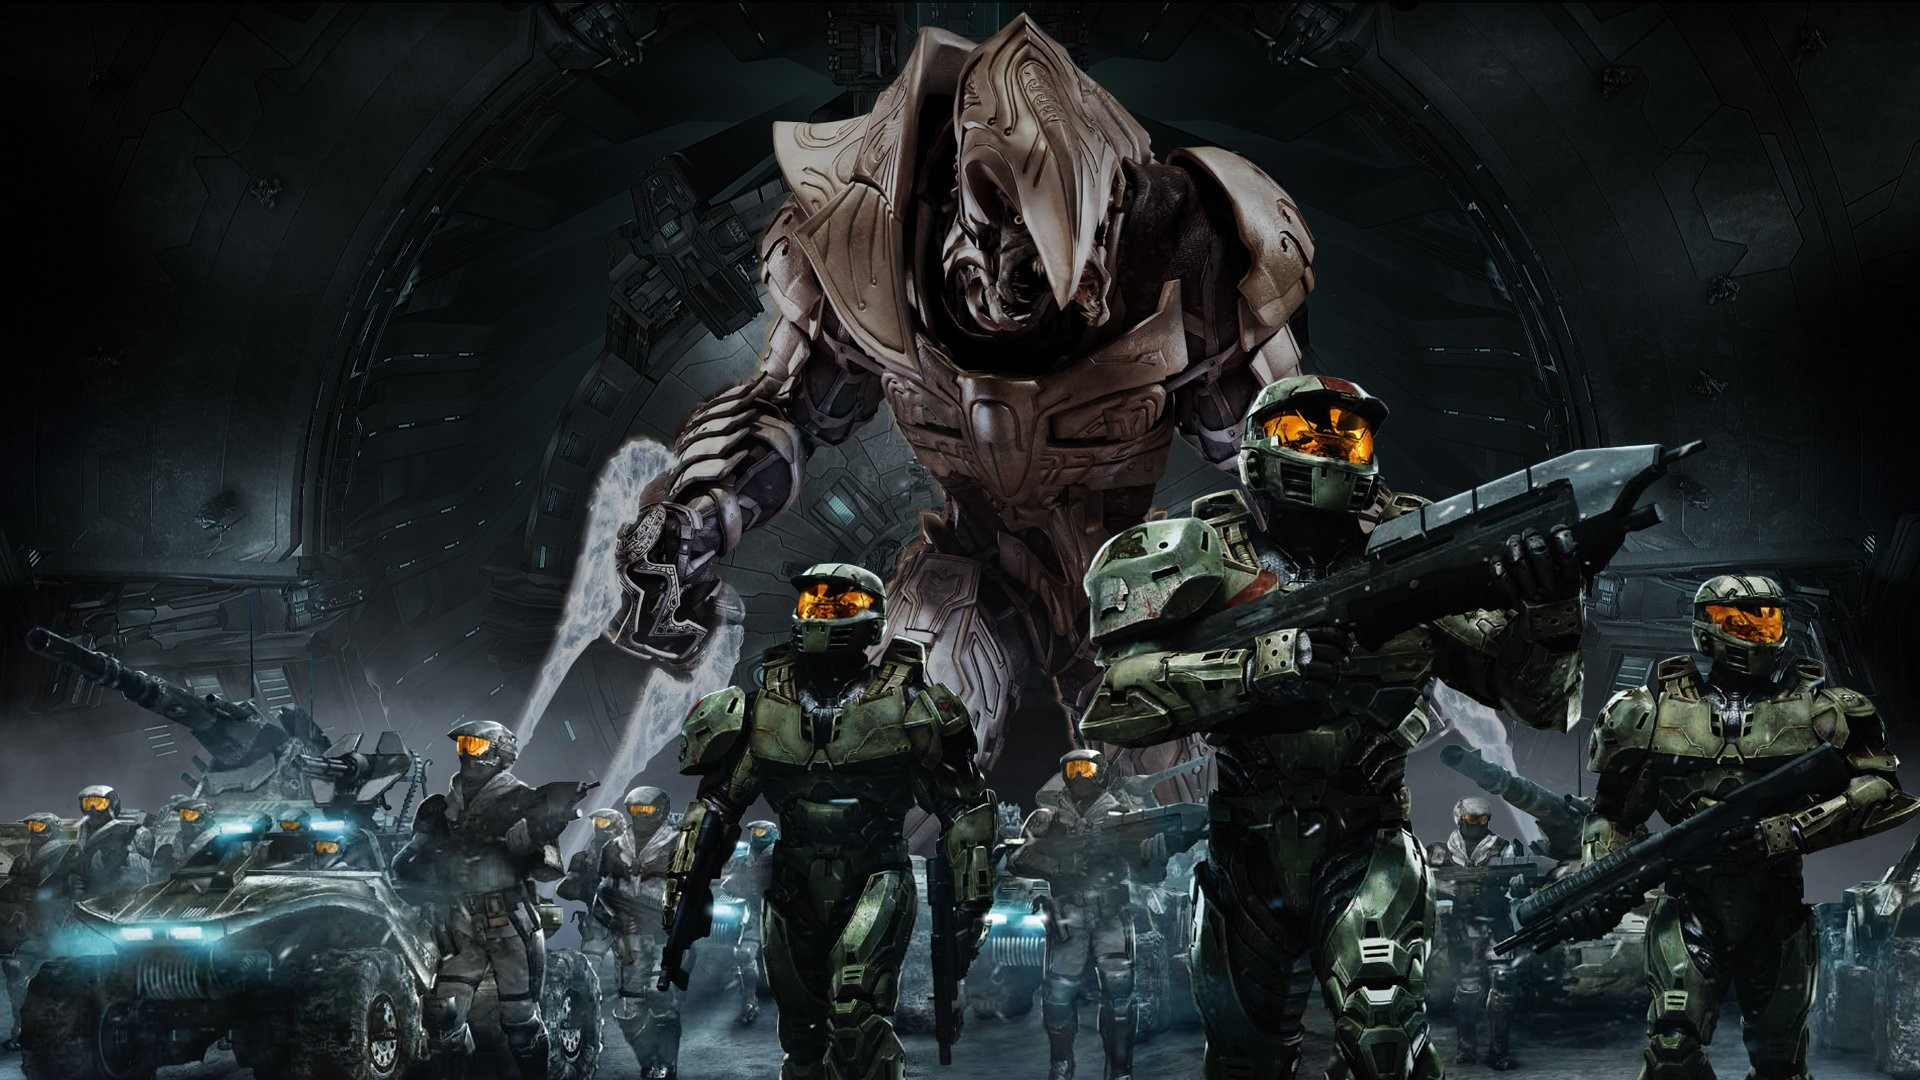 Halo Wars Wallpaper Hd 72 Images